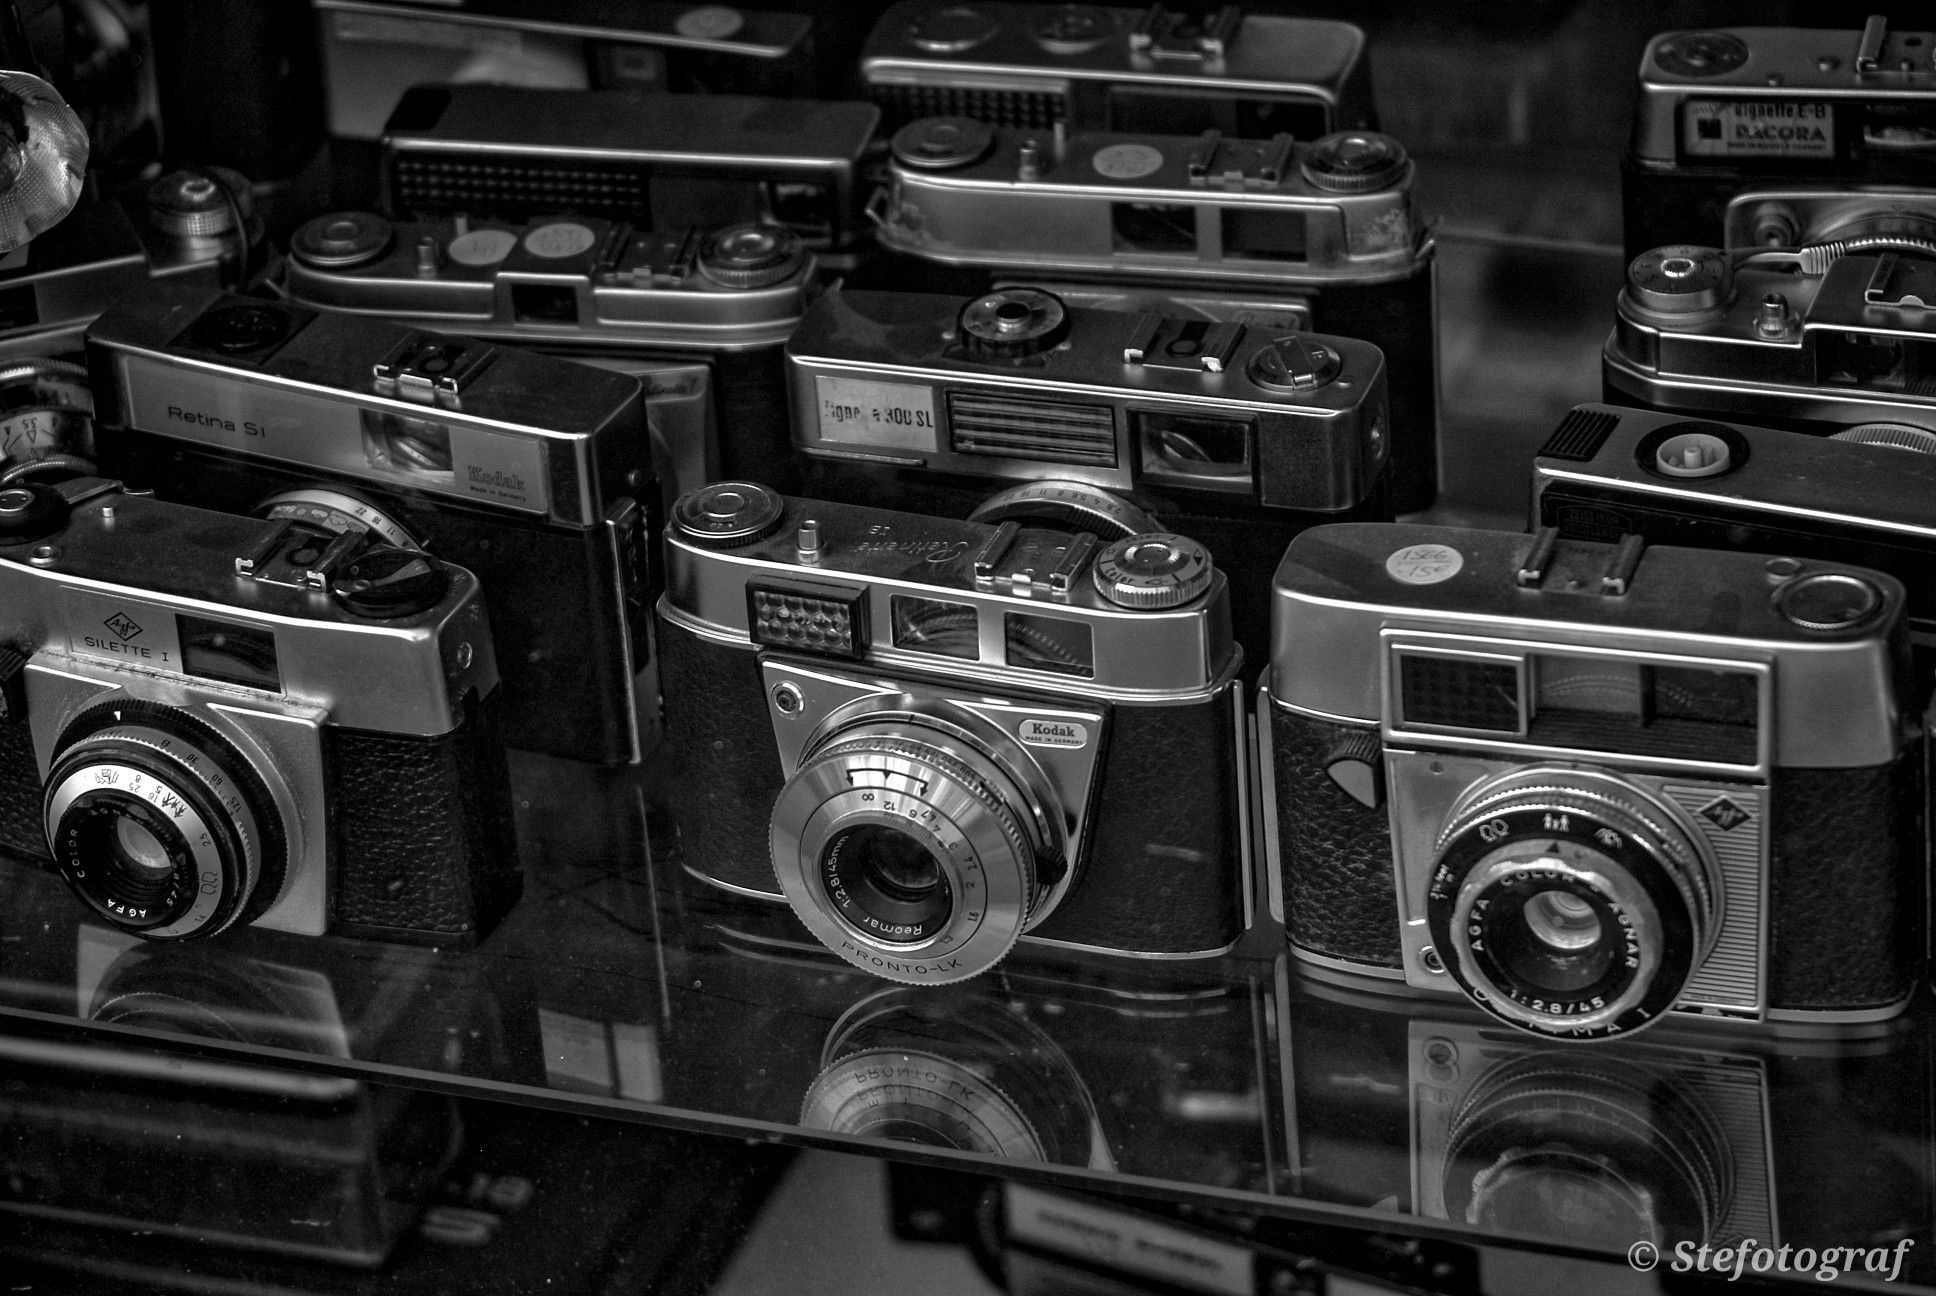 #noiretblancphotographie #blackandwhitephotography #bw #noiretblanc #blackandwhite #black #white #photography #photo #camera